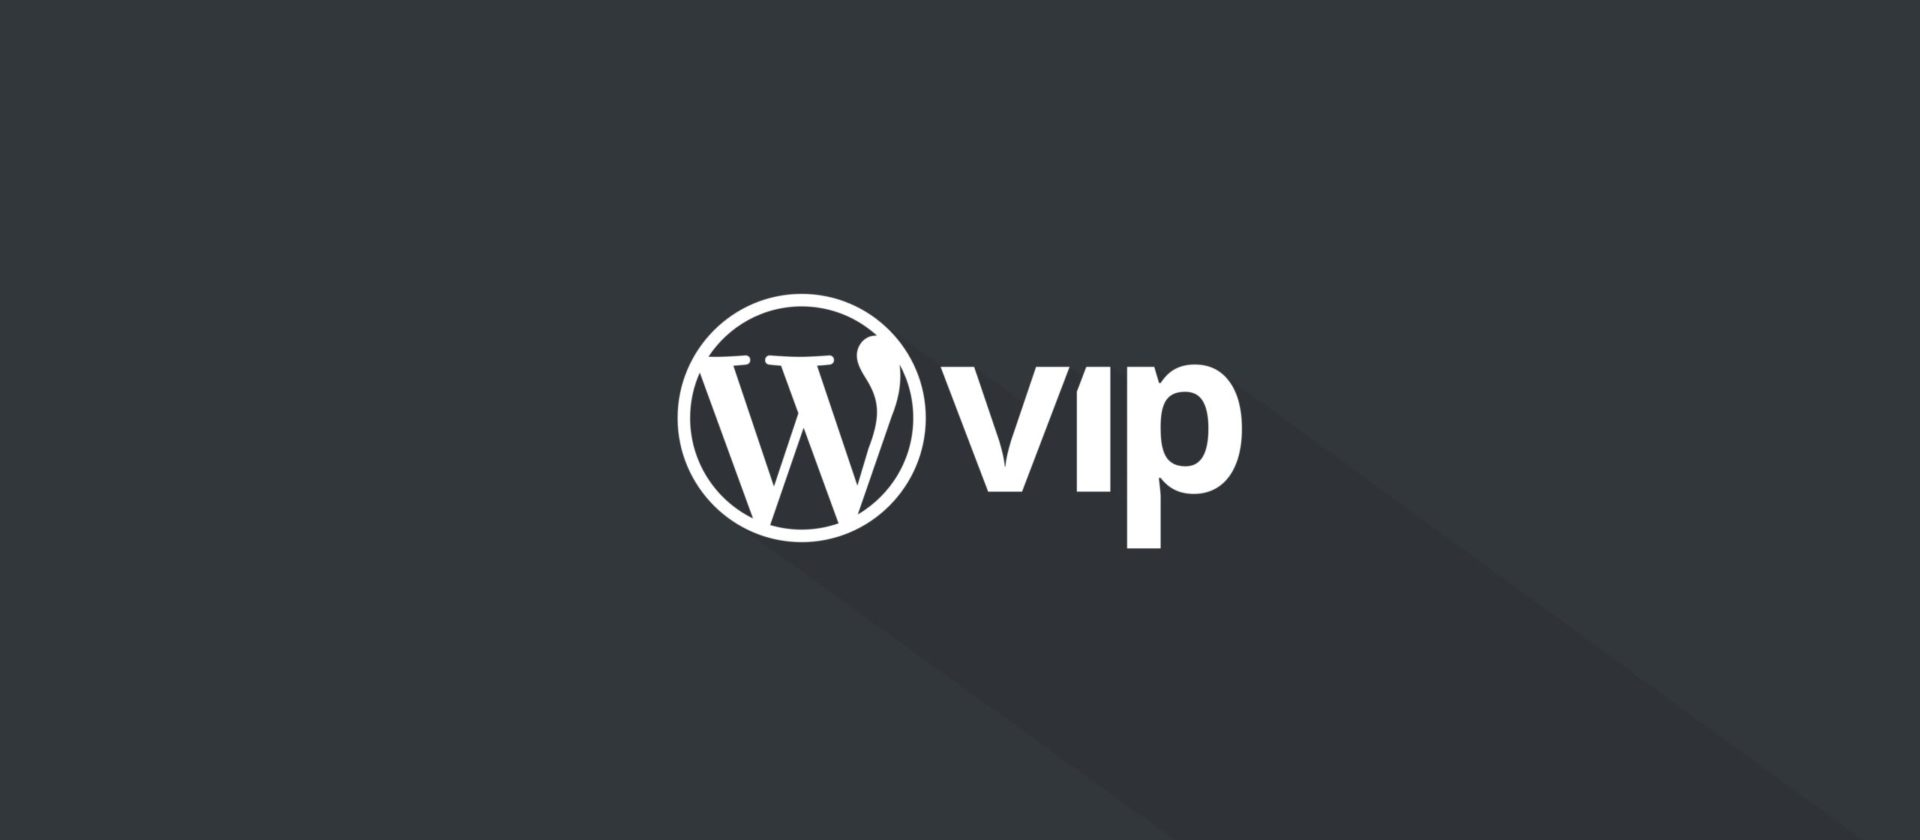 WordPress VIP Partner Logo